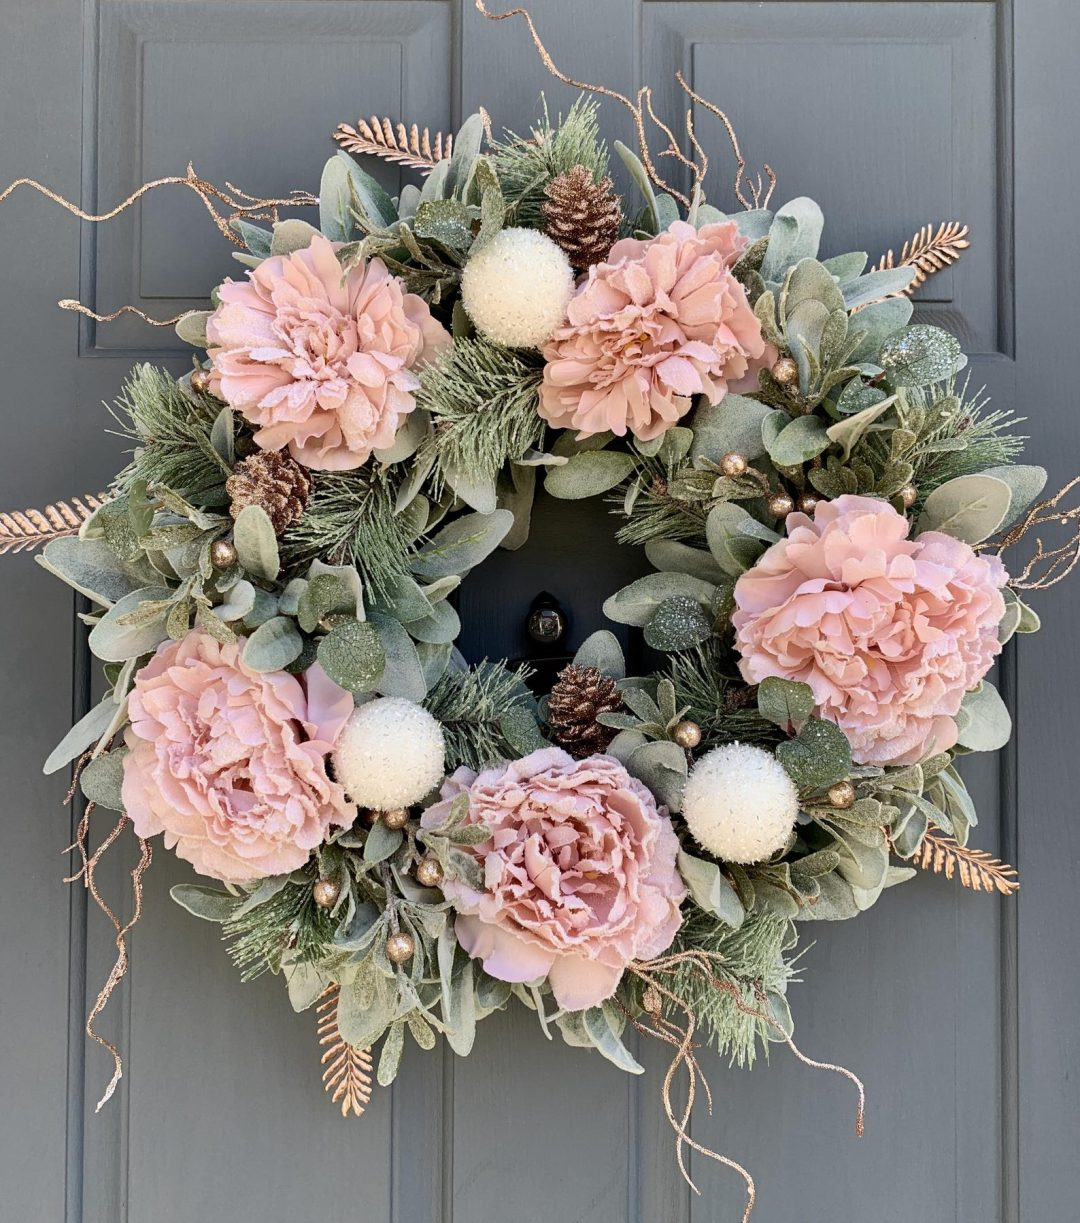 Rose Gold Christmas Wreath With Lamb's Ear